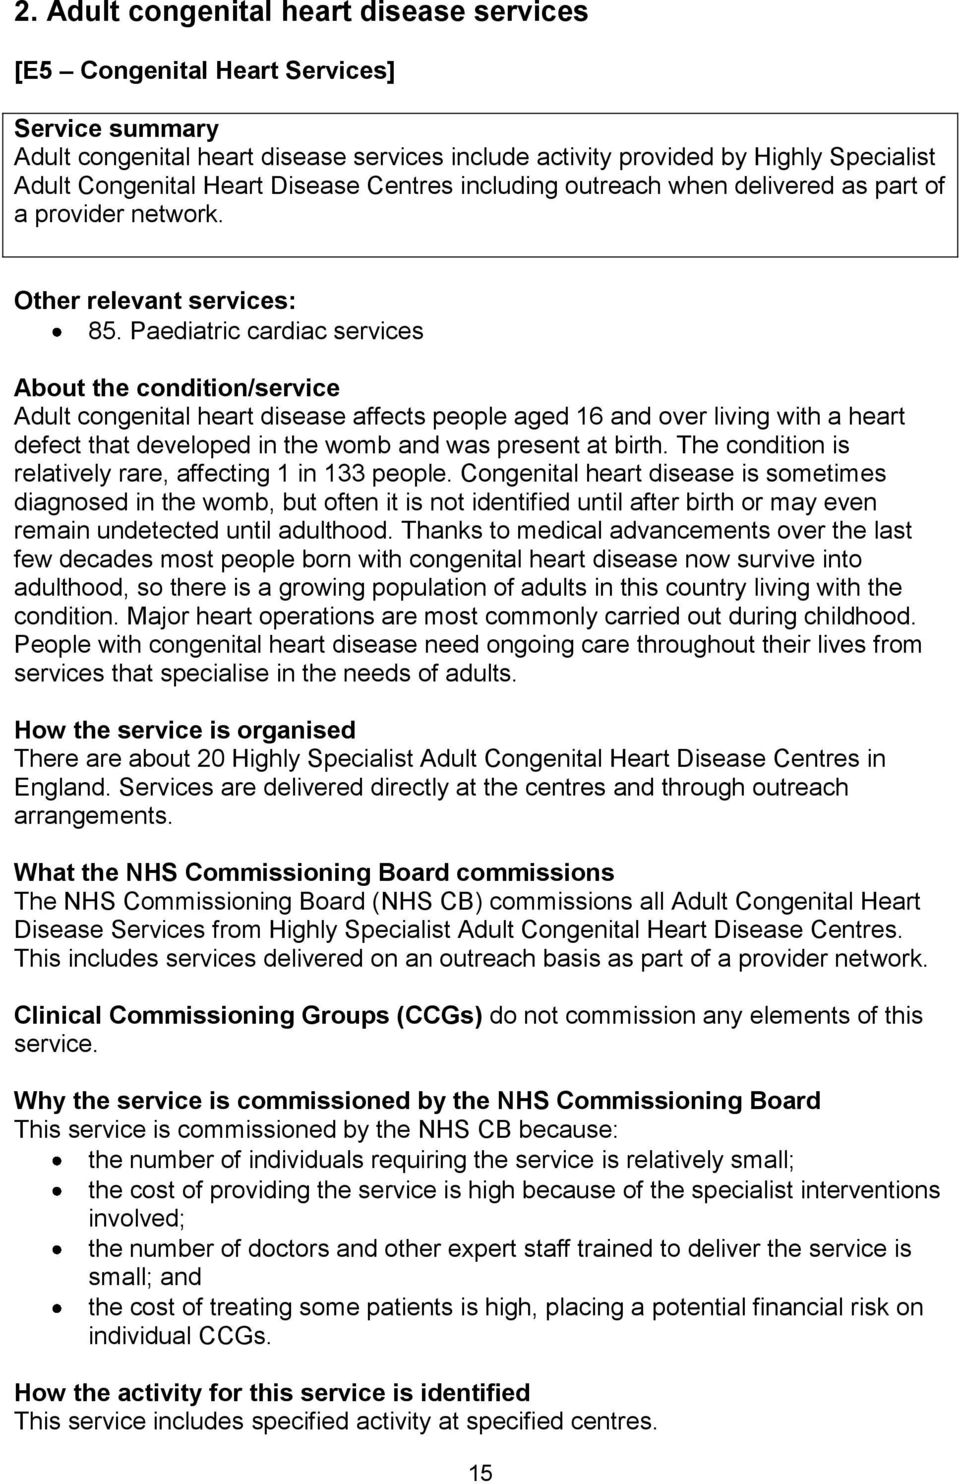 Paediatric cardiac services About the condition/service Adult congenital heart disease affects people aged 16 and over living with a heart defect that developed in the womb and was present at birth.